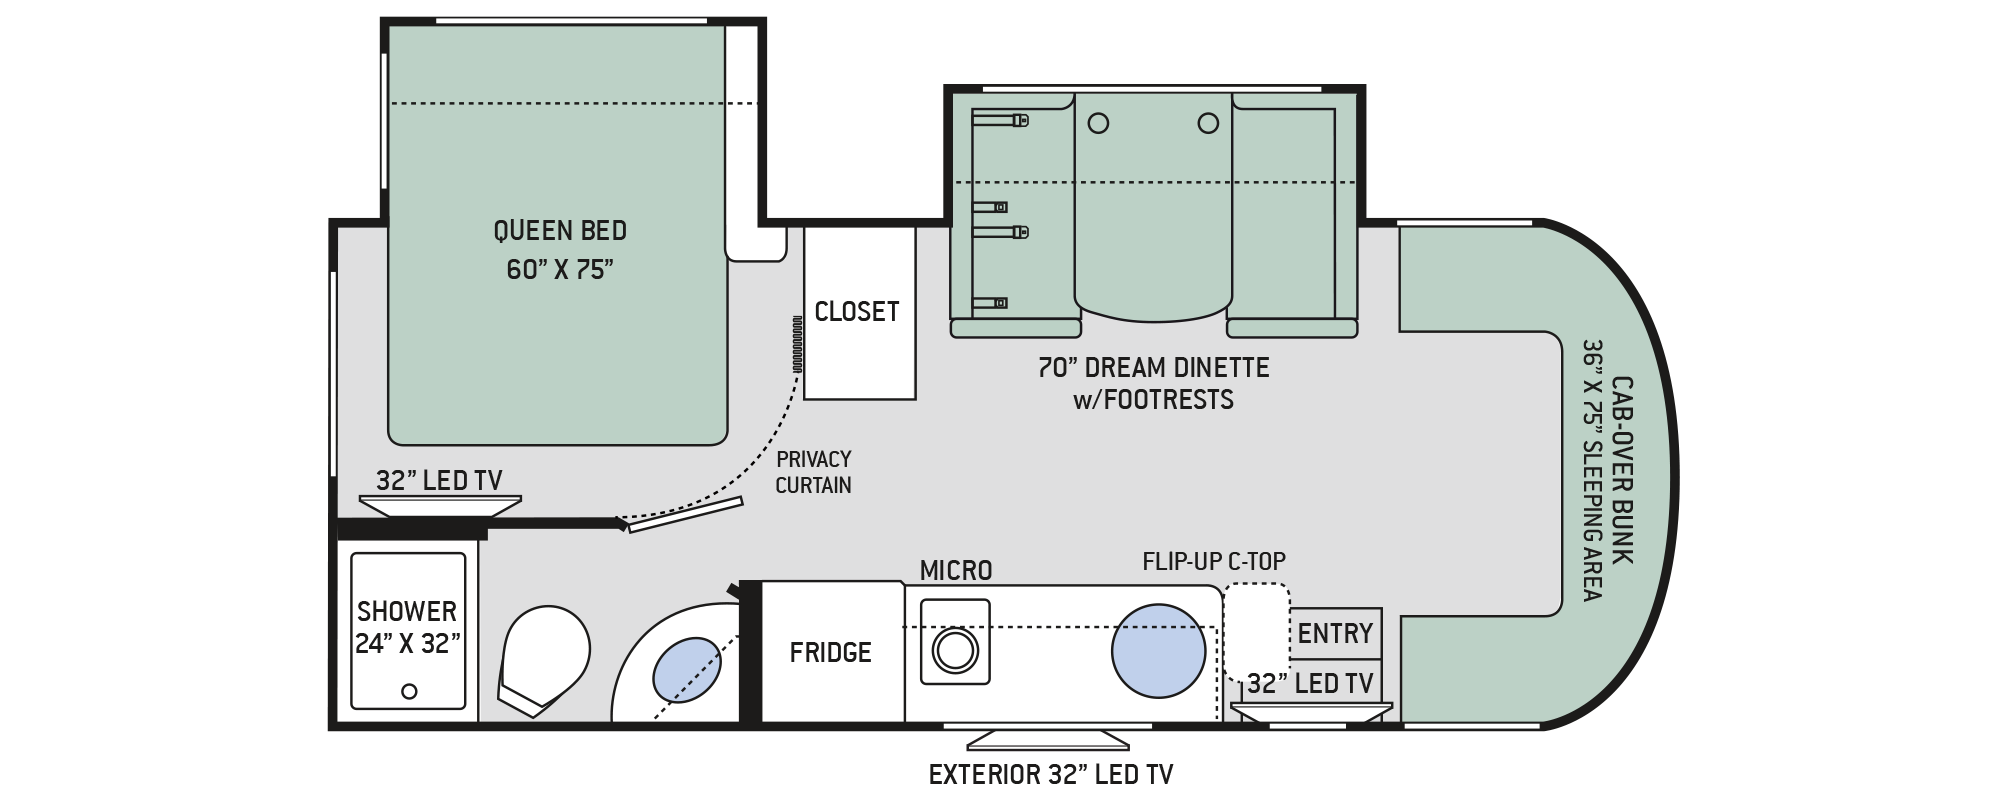 2018-citation-sprinter-24ss-floor-plan Rv Cl C Motorhome Floor Plans on rv dealers floor plans, rv bunk floor plans, shasta rvs floor plans, fleetwood rv floor plans, type b motorhome floor plans, class c rv floor plans, rv home floor plans, tour motorhome floor plans, rv toy haulers floor plans, large rv floor plans, class b rv floor plans, class a rv floor plans, heavy equipment floor plans, mobile home floor plans, small rv floor plans, rv cabins floor plans, motorhome with bunks floor plans, 24' motorhome floor plans, motorhome repair floor plans, luxury motorhome floor plans,